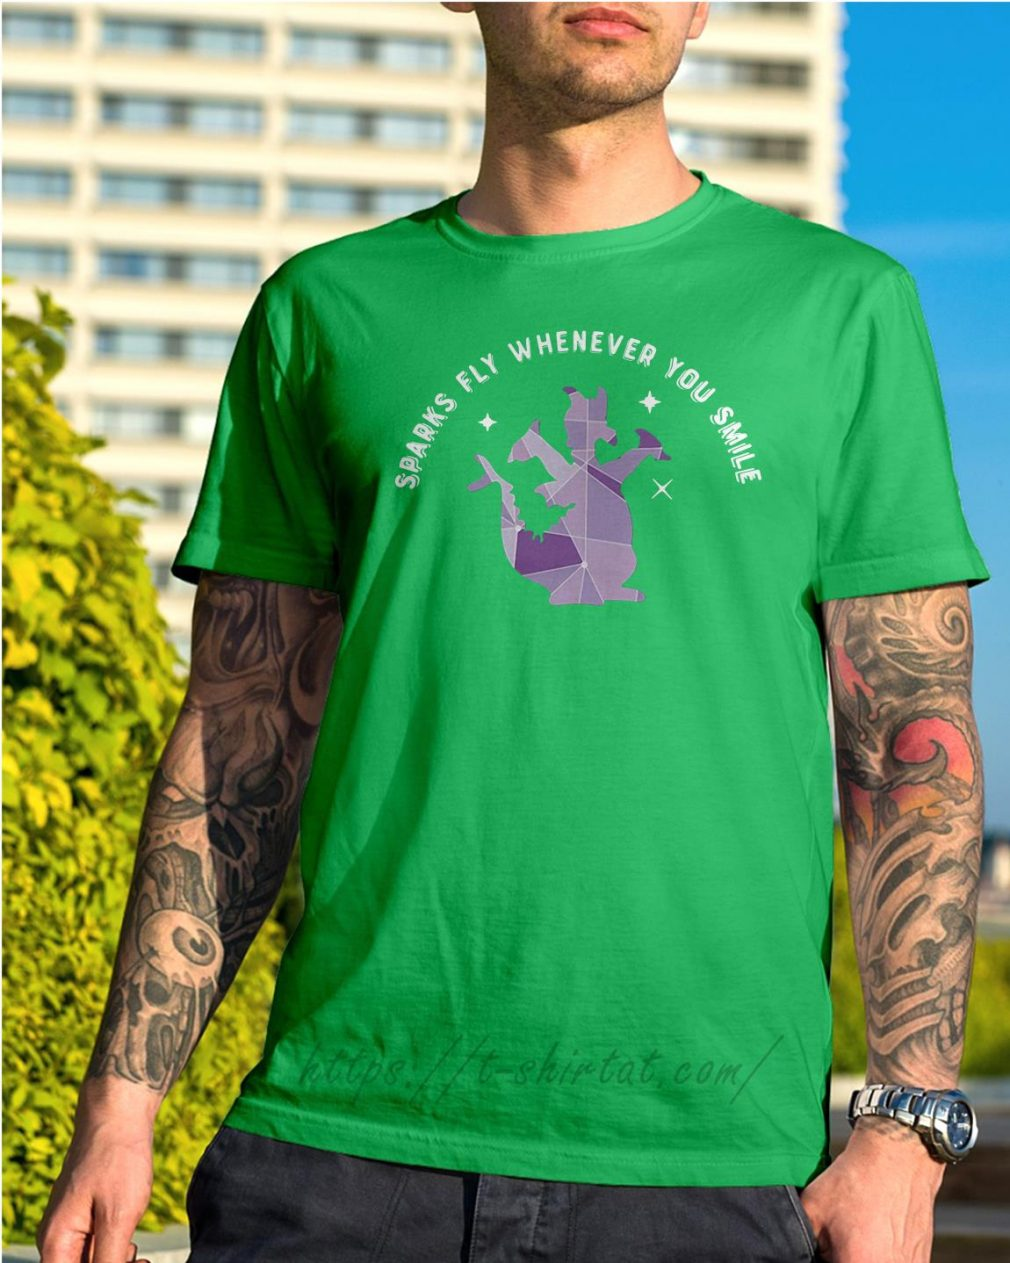 Saurus sparks fly whenever you smile Shirt Green